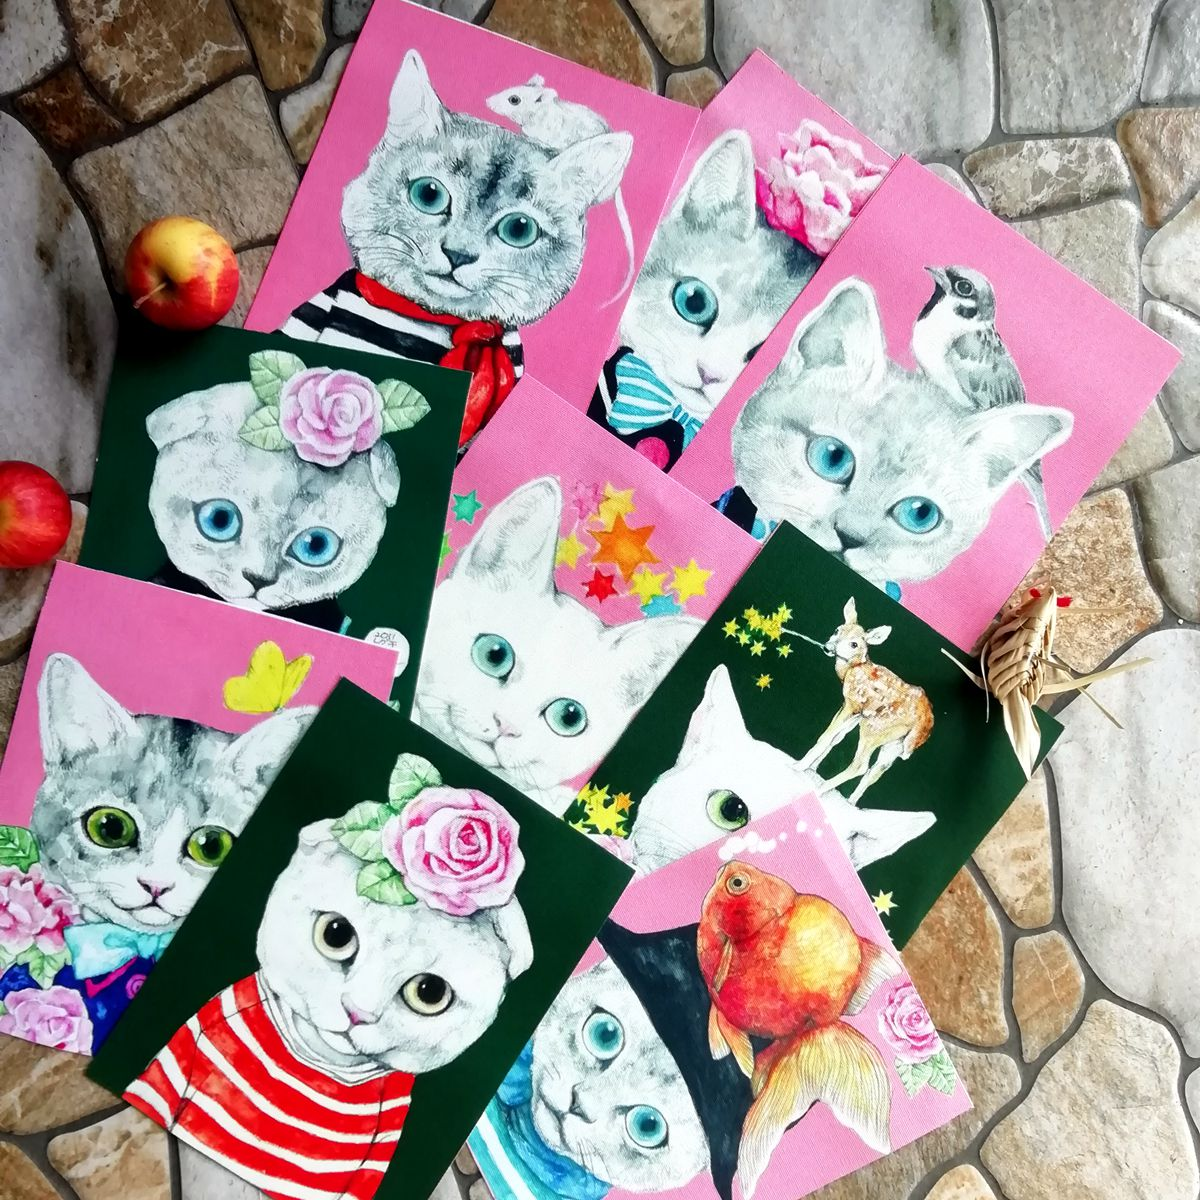 hand dyed fabric Cat Series Cotton canvas Fabric DIY Handmade Hometextile Patchwork Cloth For wallet/cup mat Patch wall decora